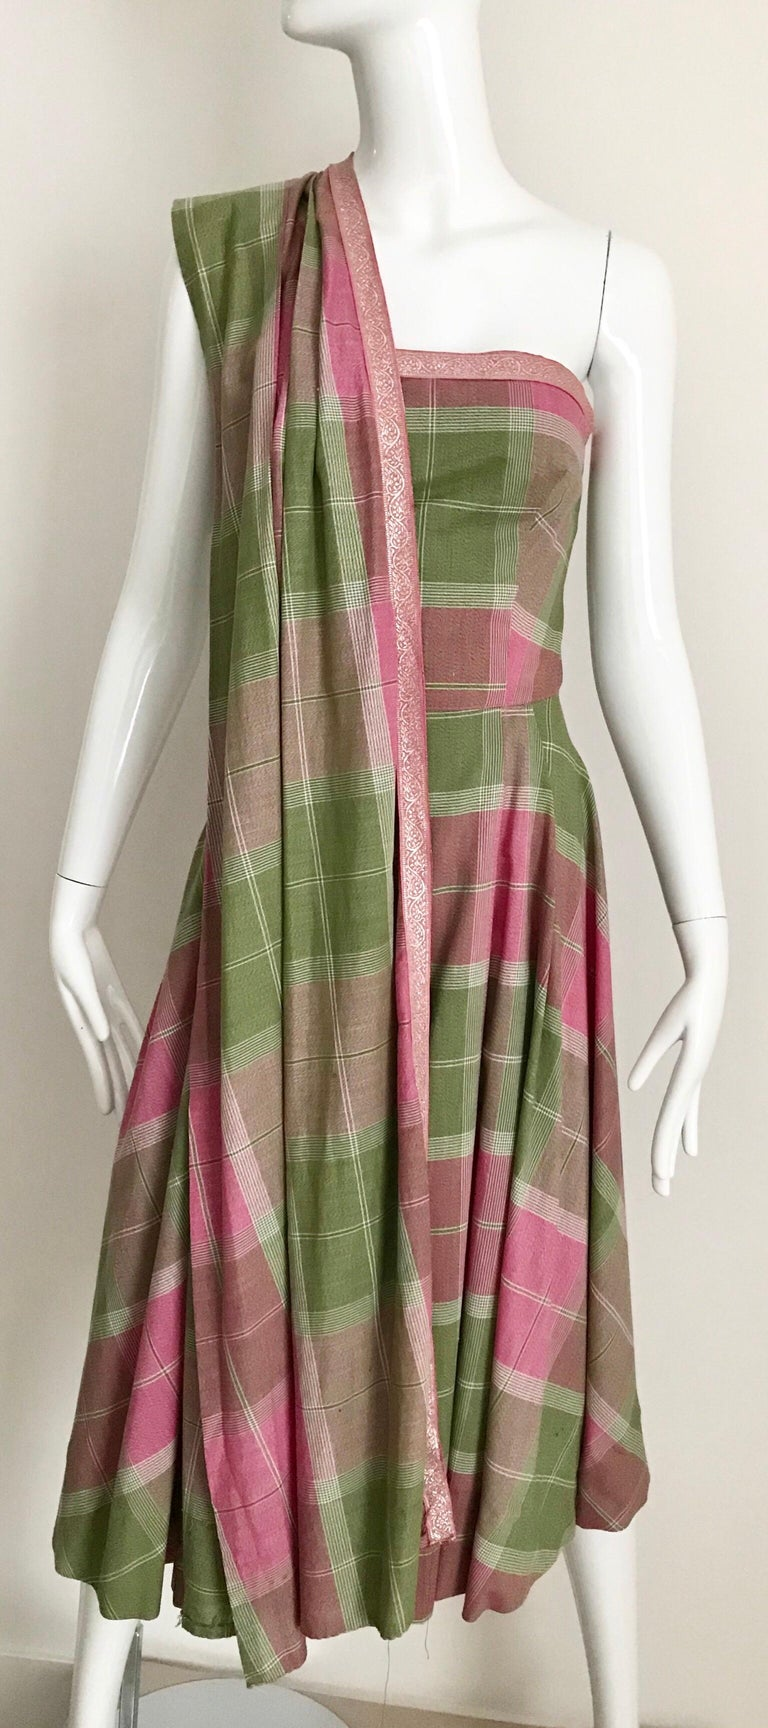 Vintage Tina Lesser Pink and Green Plaid Cotton Dress In Good Condition For Sale In Beverly Hills, CA